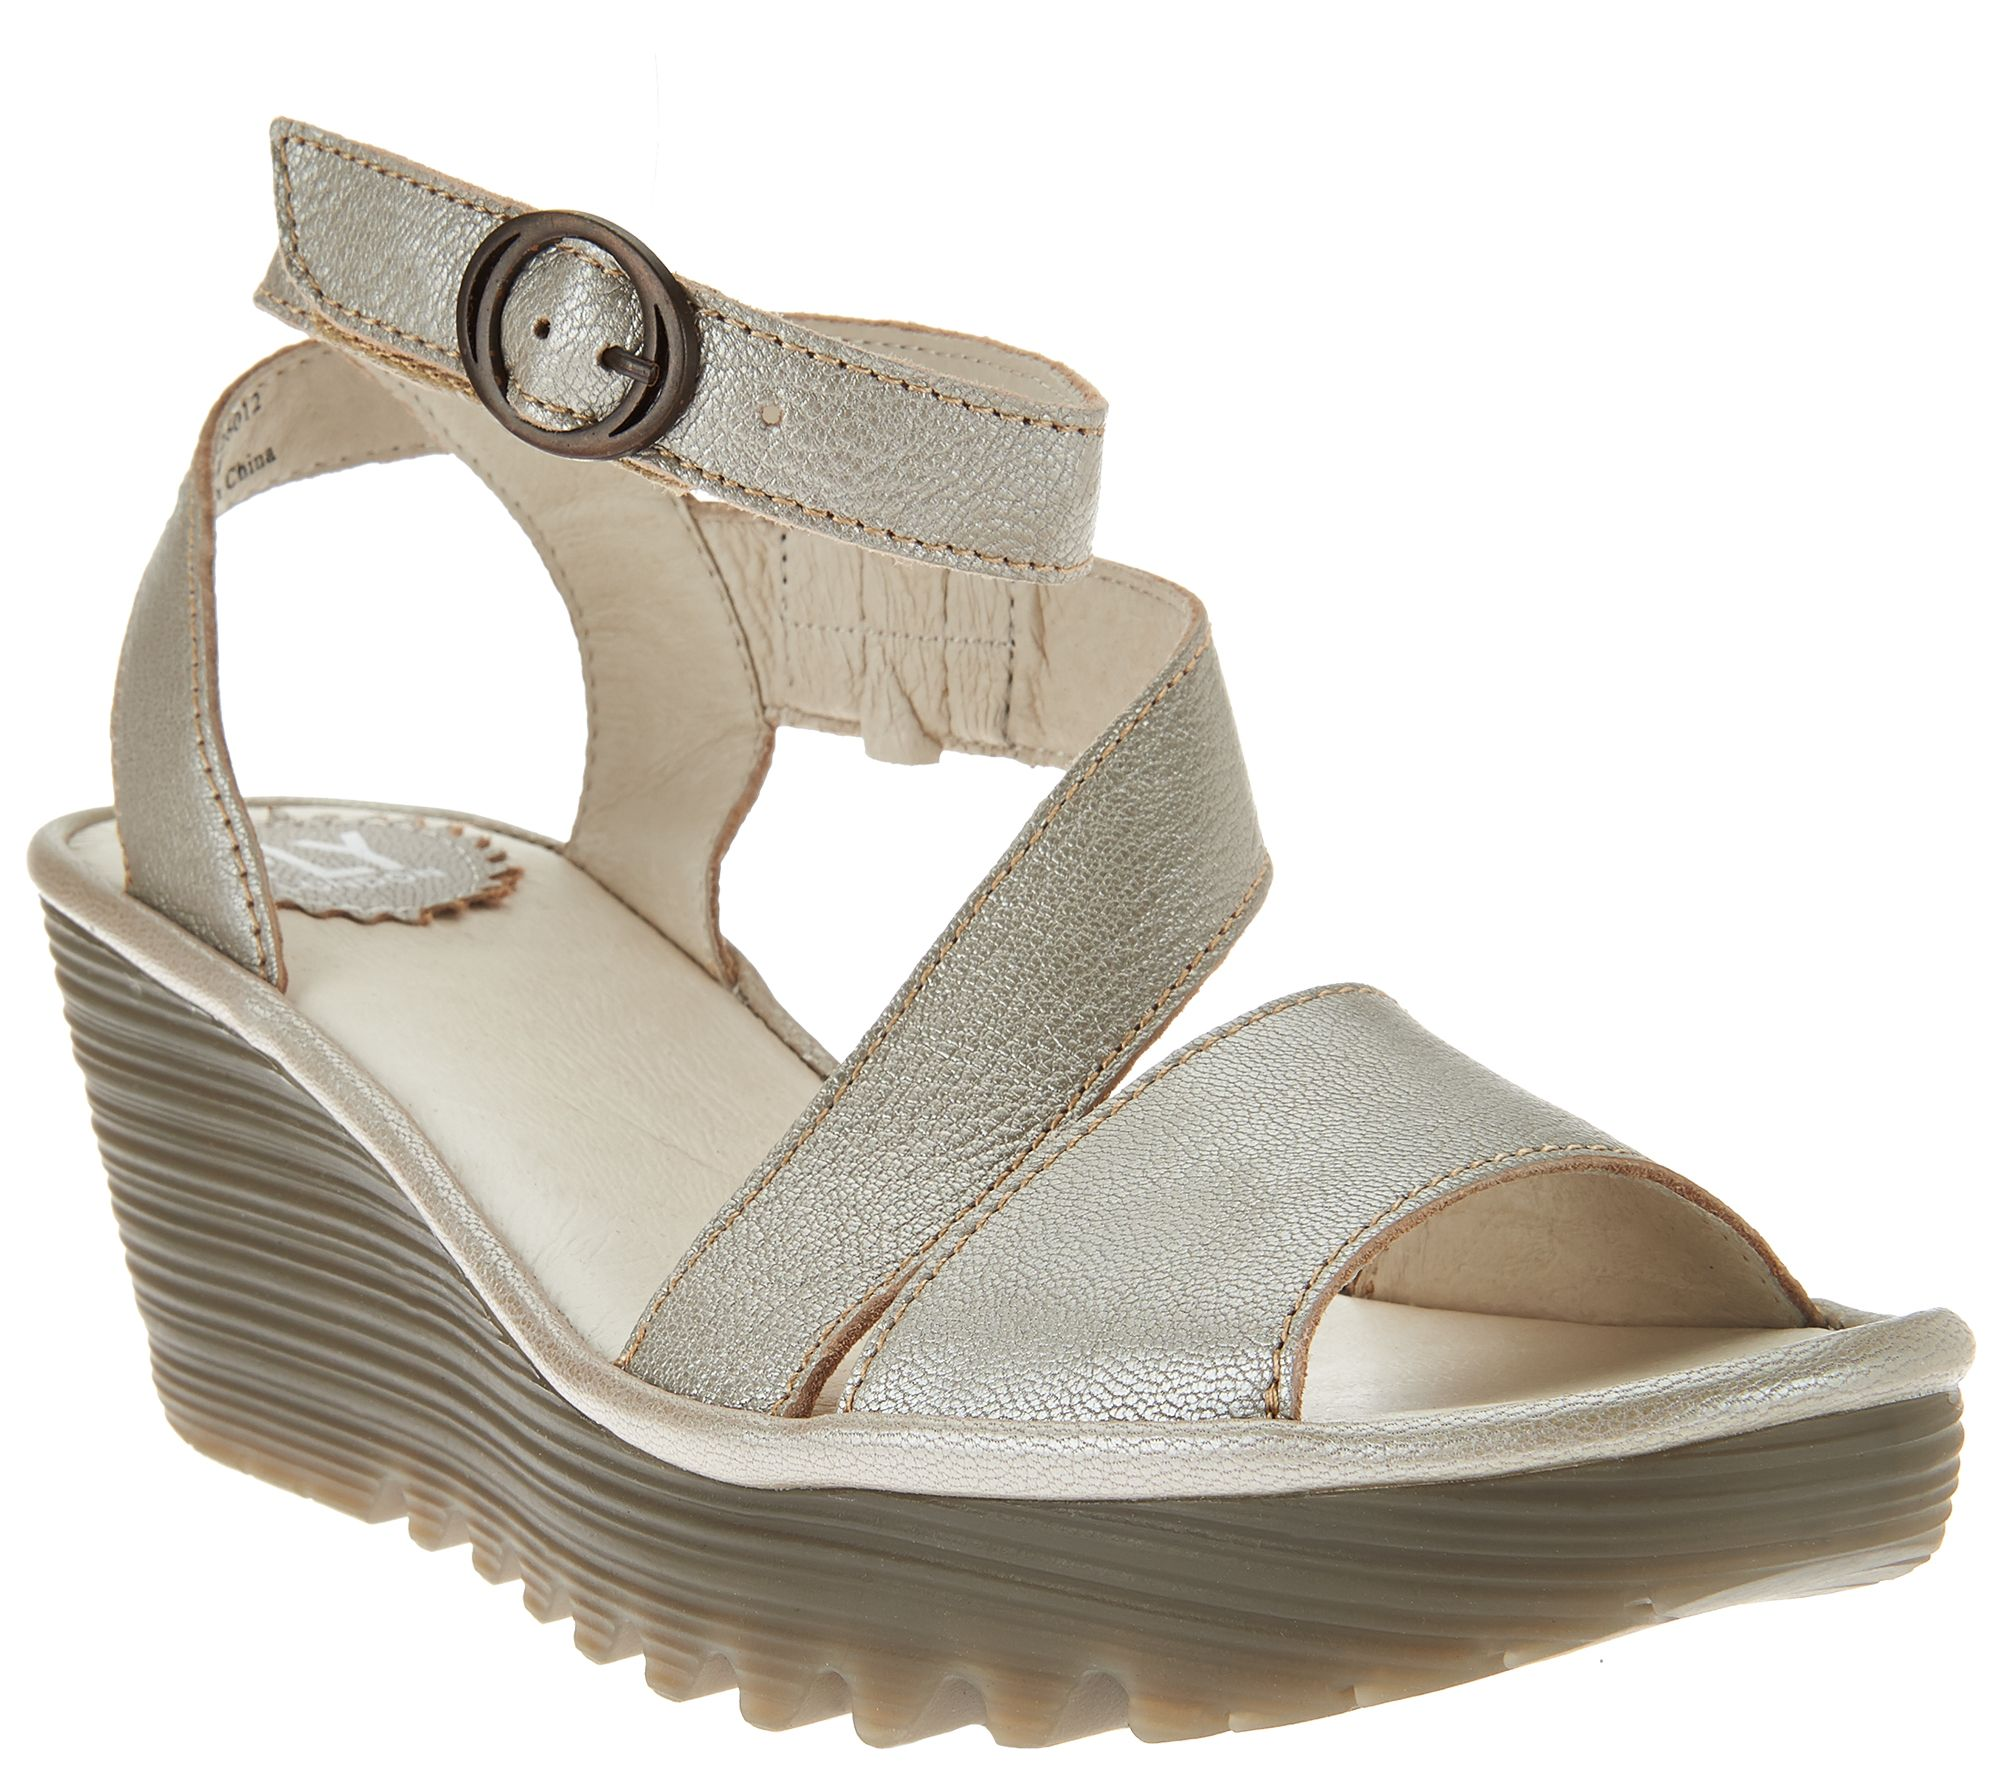 2b5c8f56a20 FLY London Leather Asymmetrical Strap Wedge Sandals - Yesk - Page 1 —  QVC.com